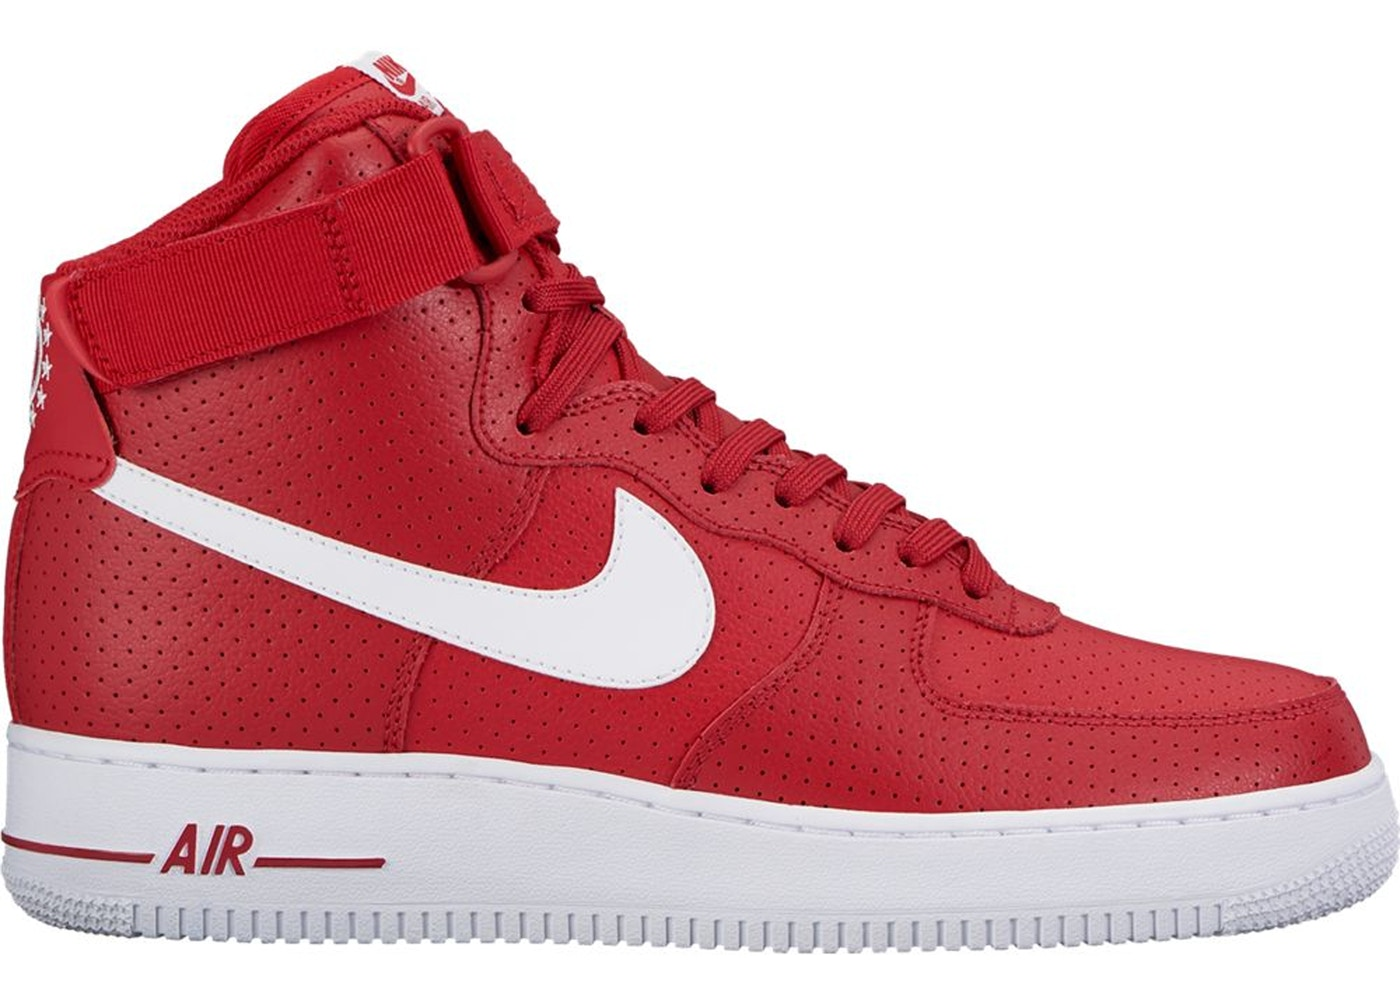 Nike Air Force 1 High Gym Red Perforated